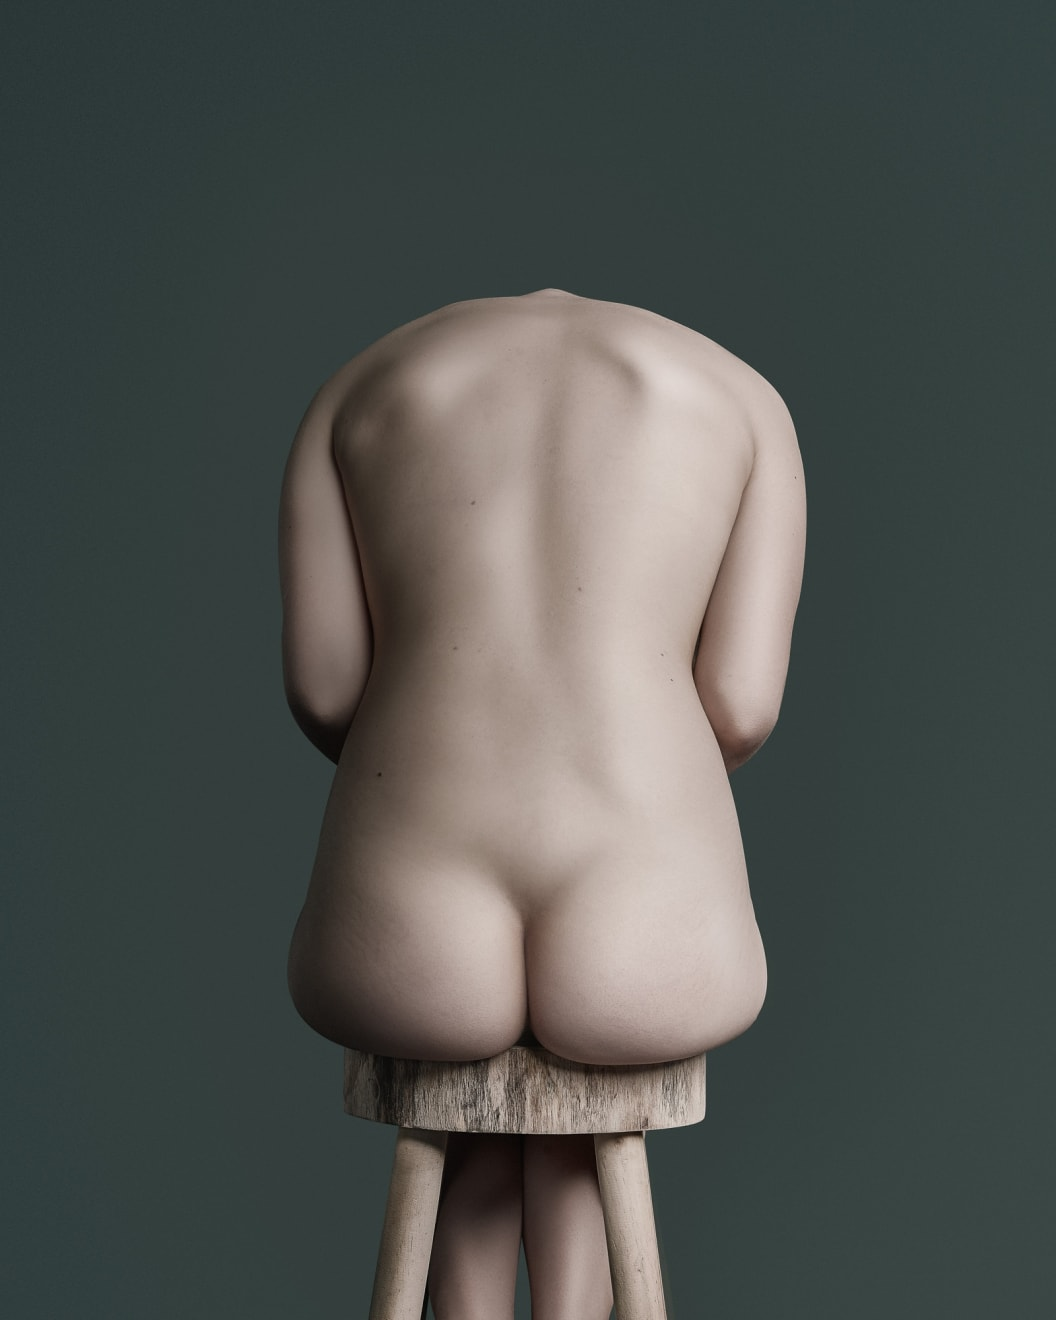 14 June 2018 Back Buttocks Stool Bronze Award PX3 Prix de la Photographie Paris, France